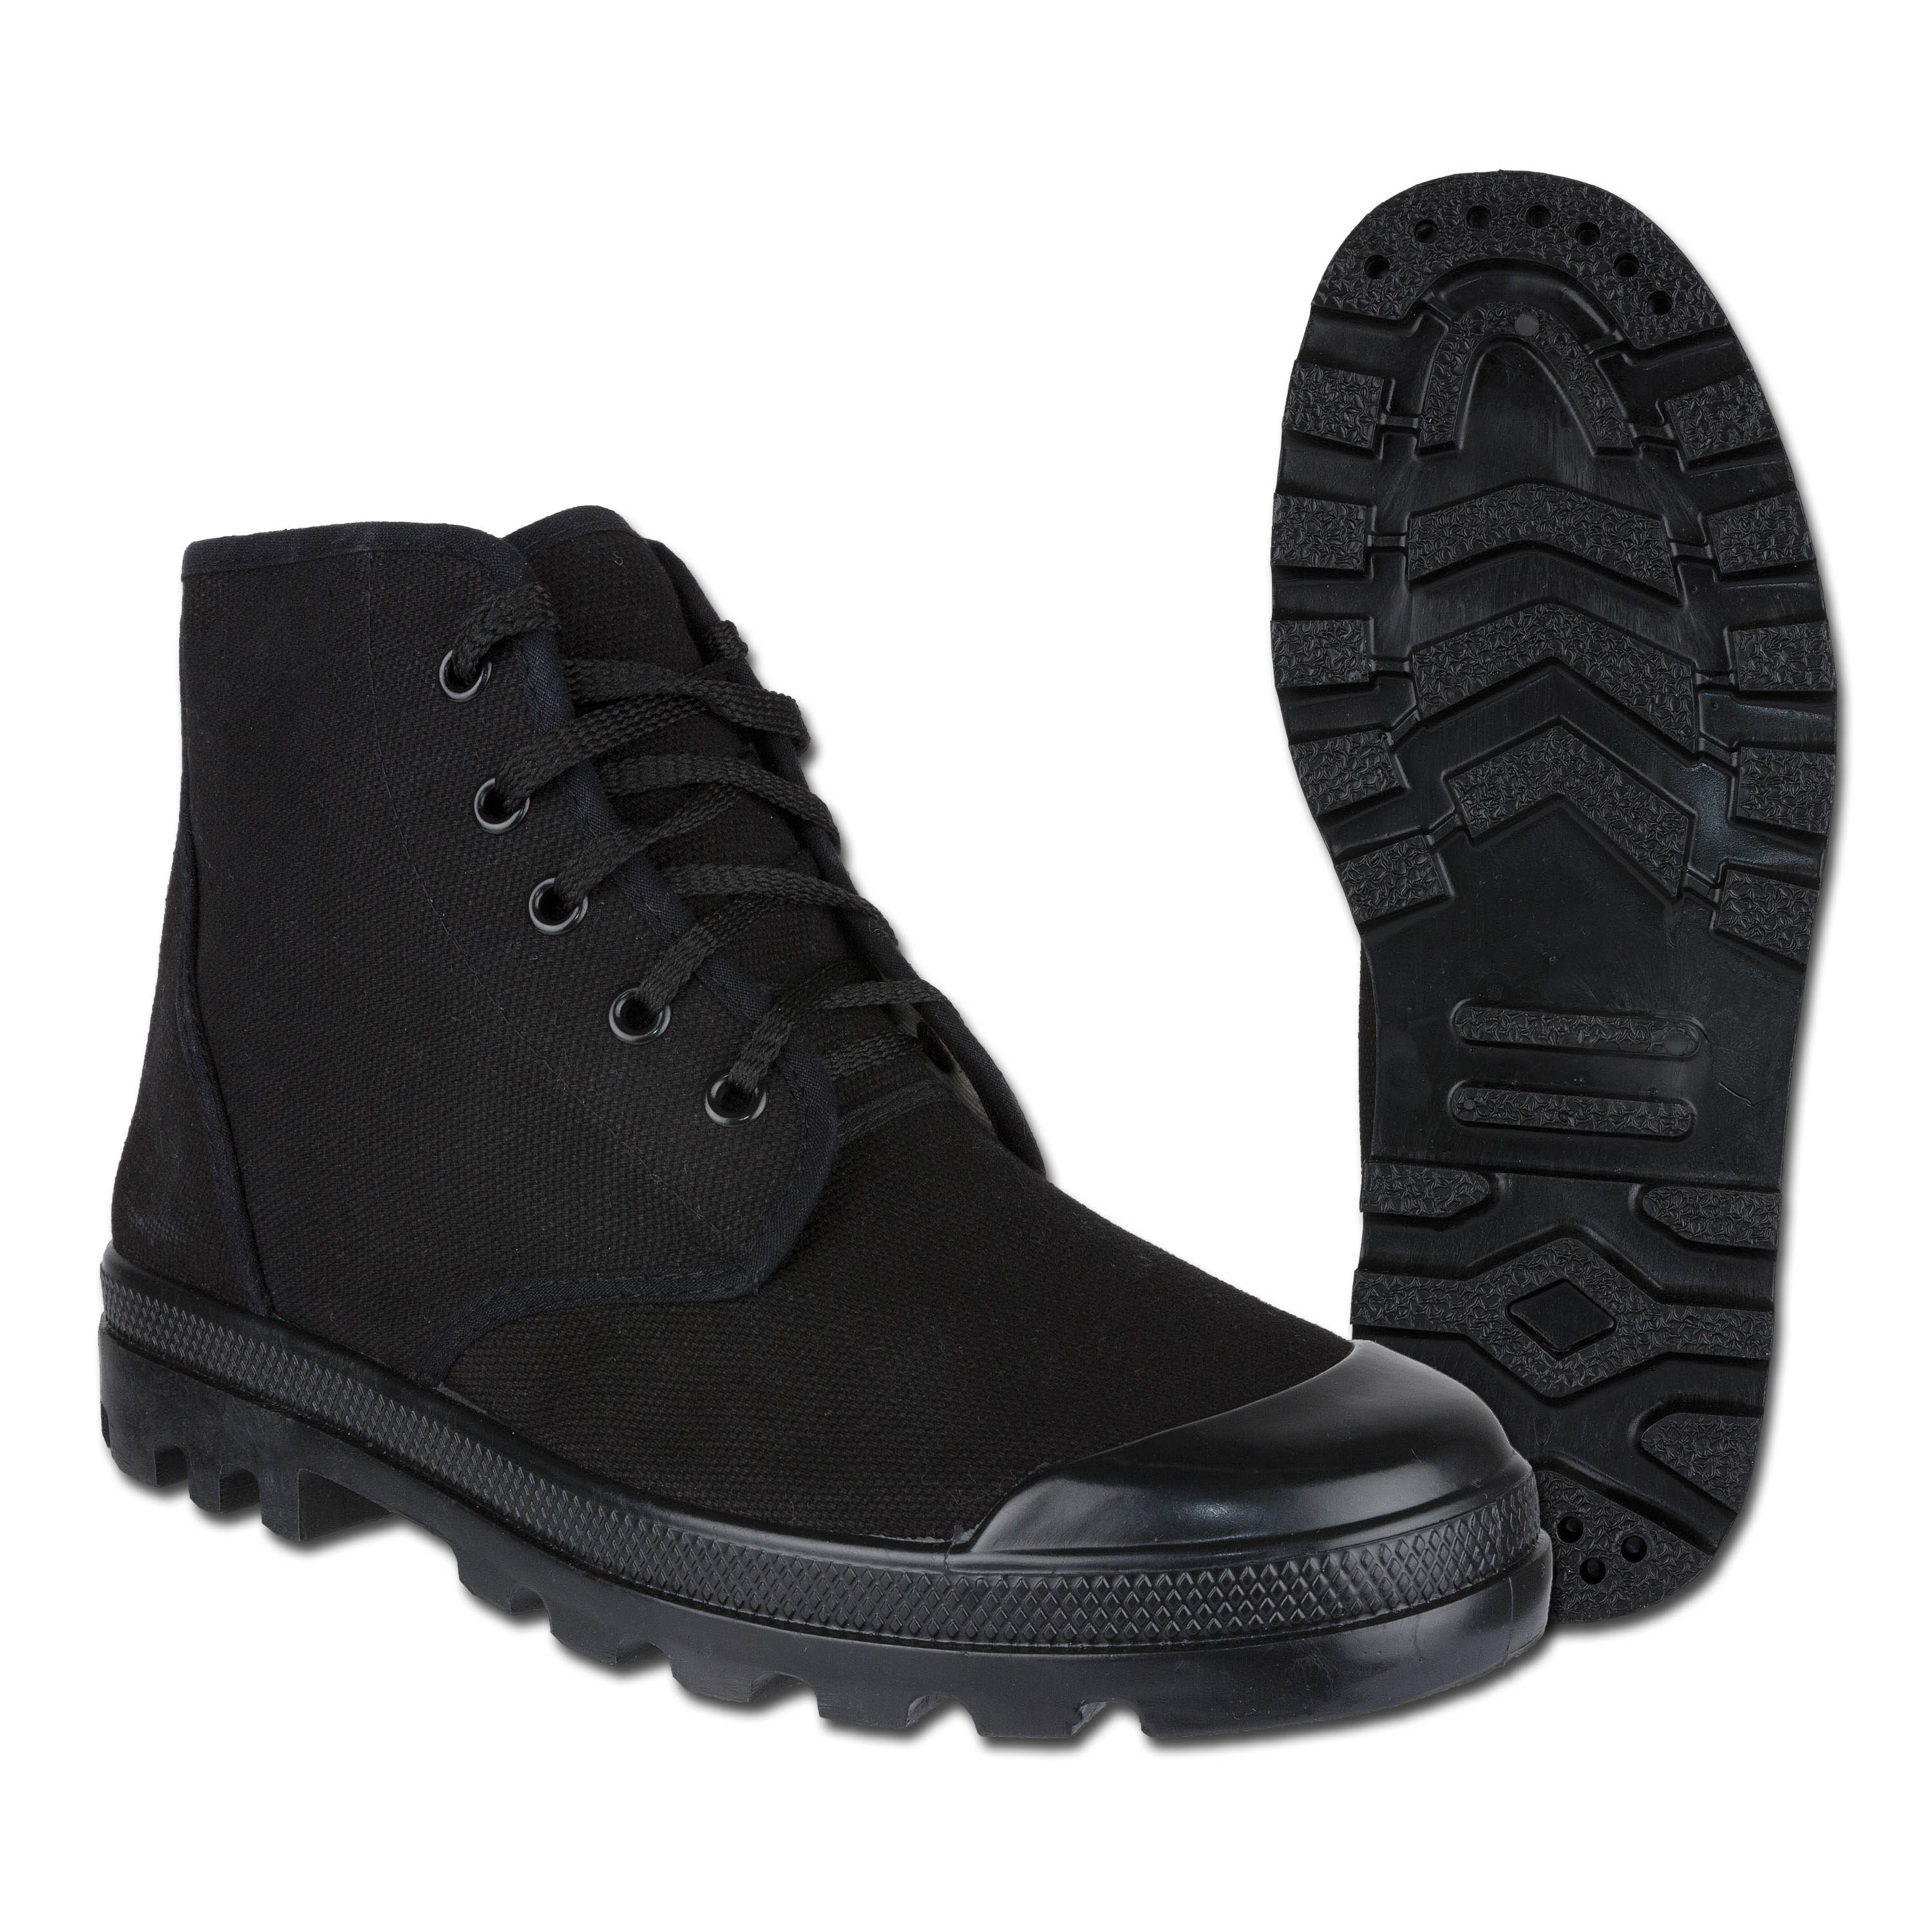 French Canvas Commando Boots 5- hole black